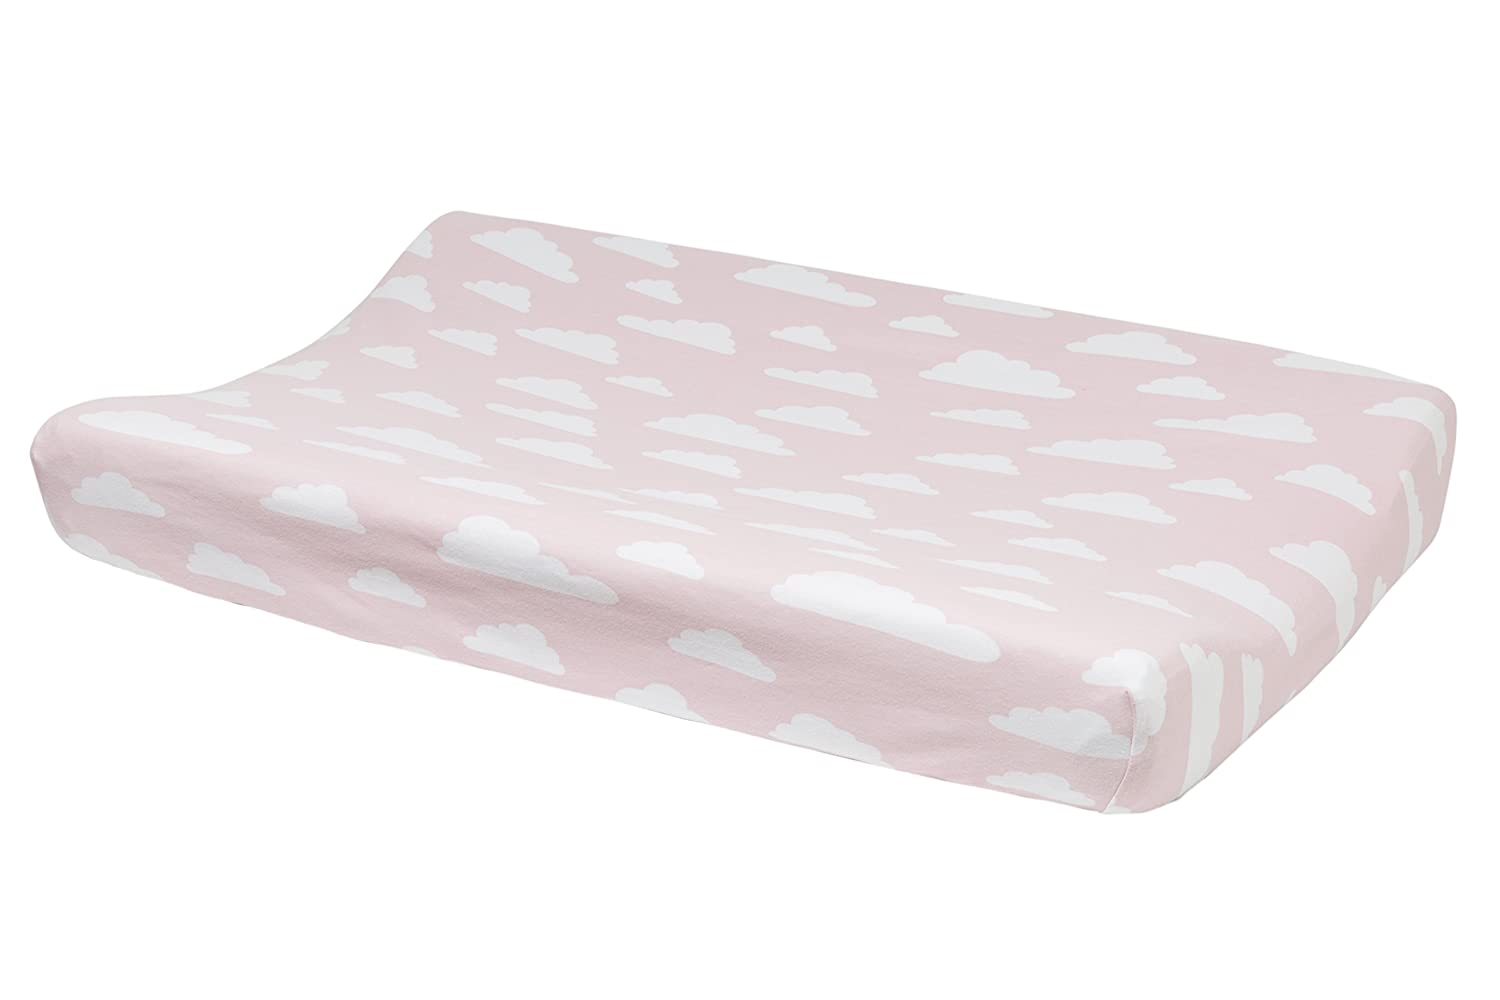 Meyco 516093/Changing Mat Double Wedge Cloud Cover Light Pink